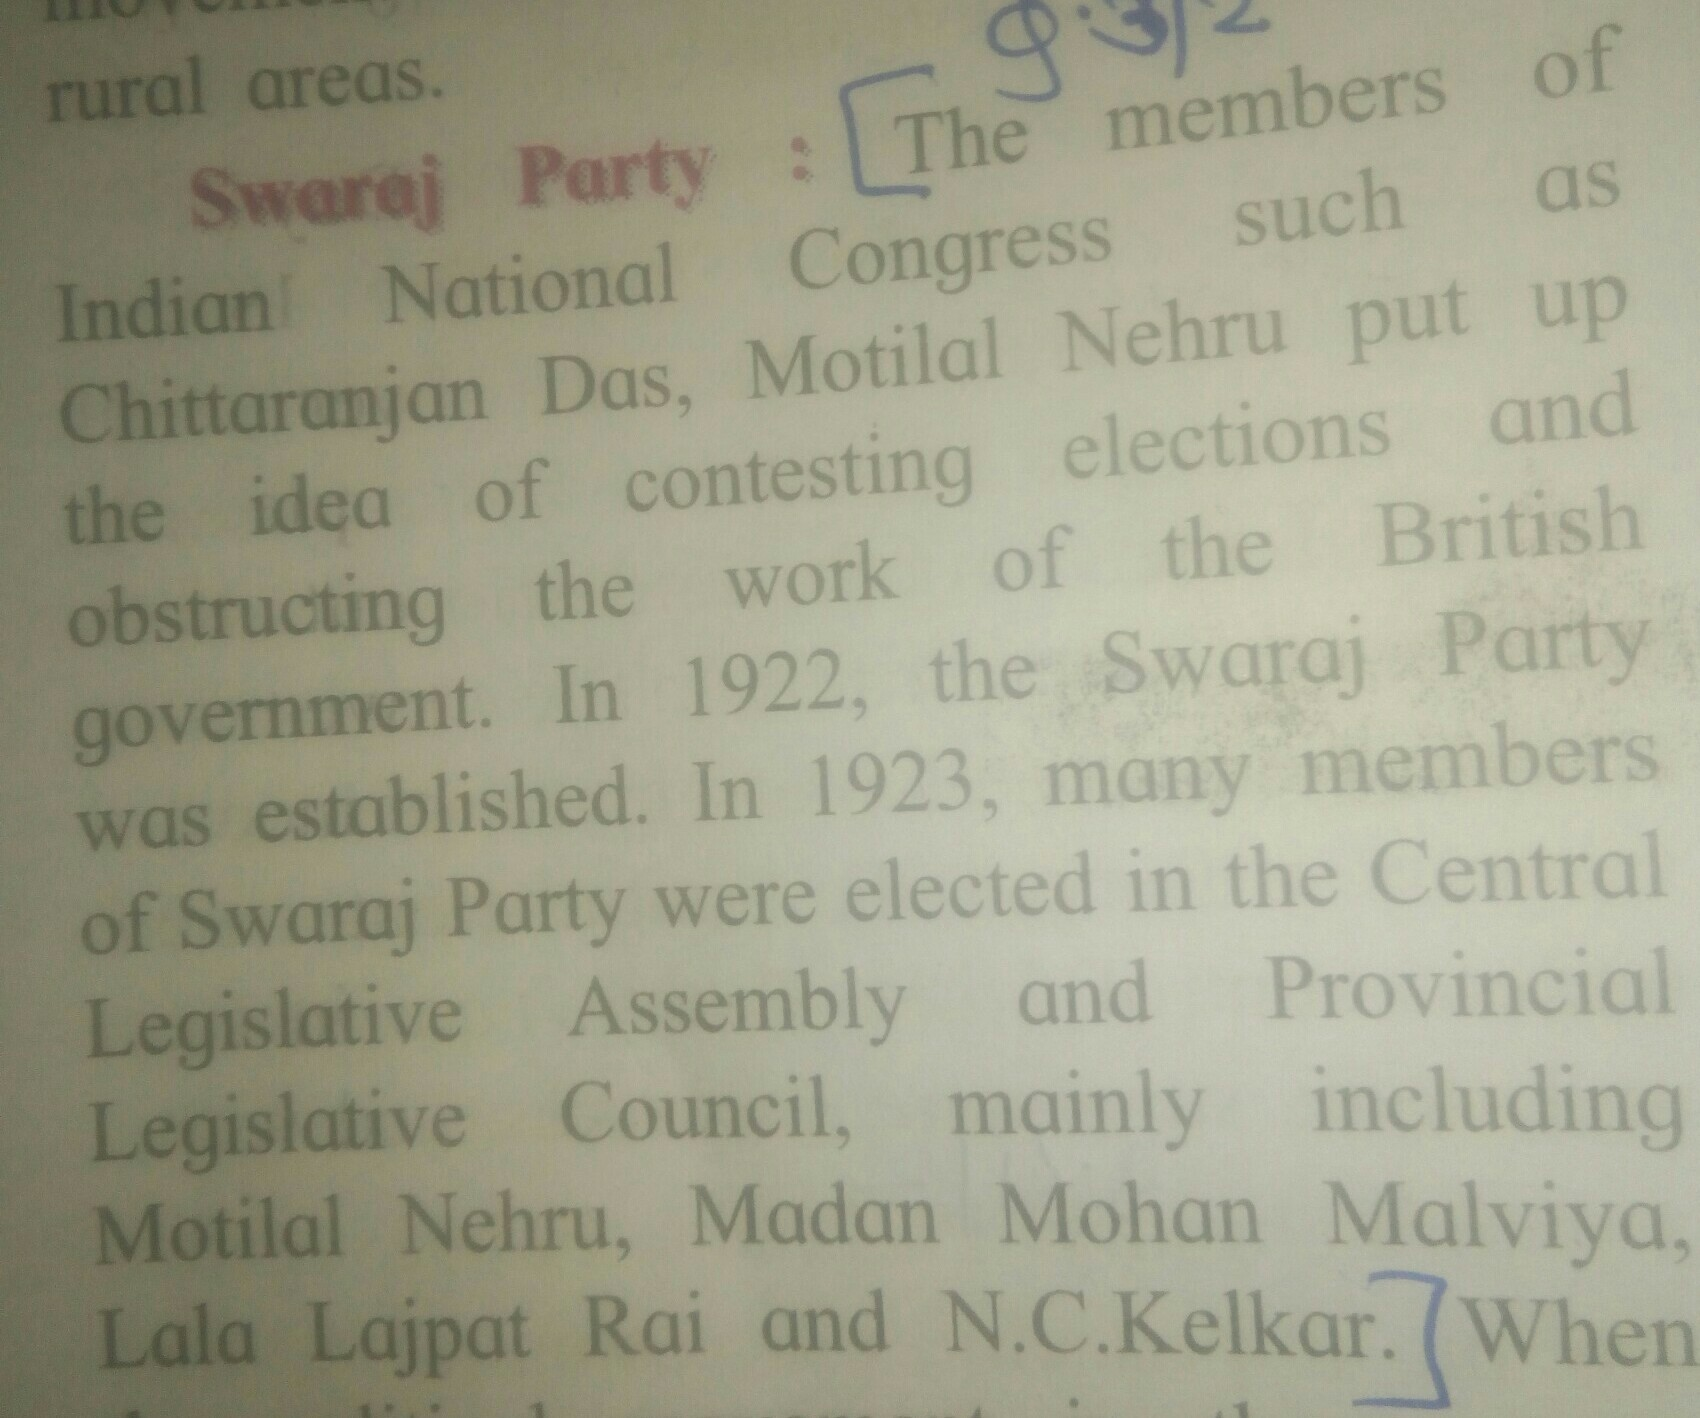 swaraj party established by